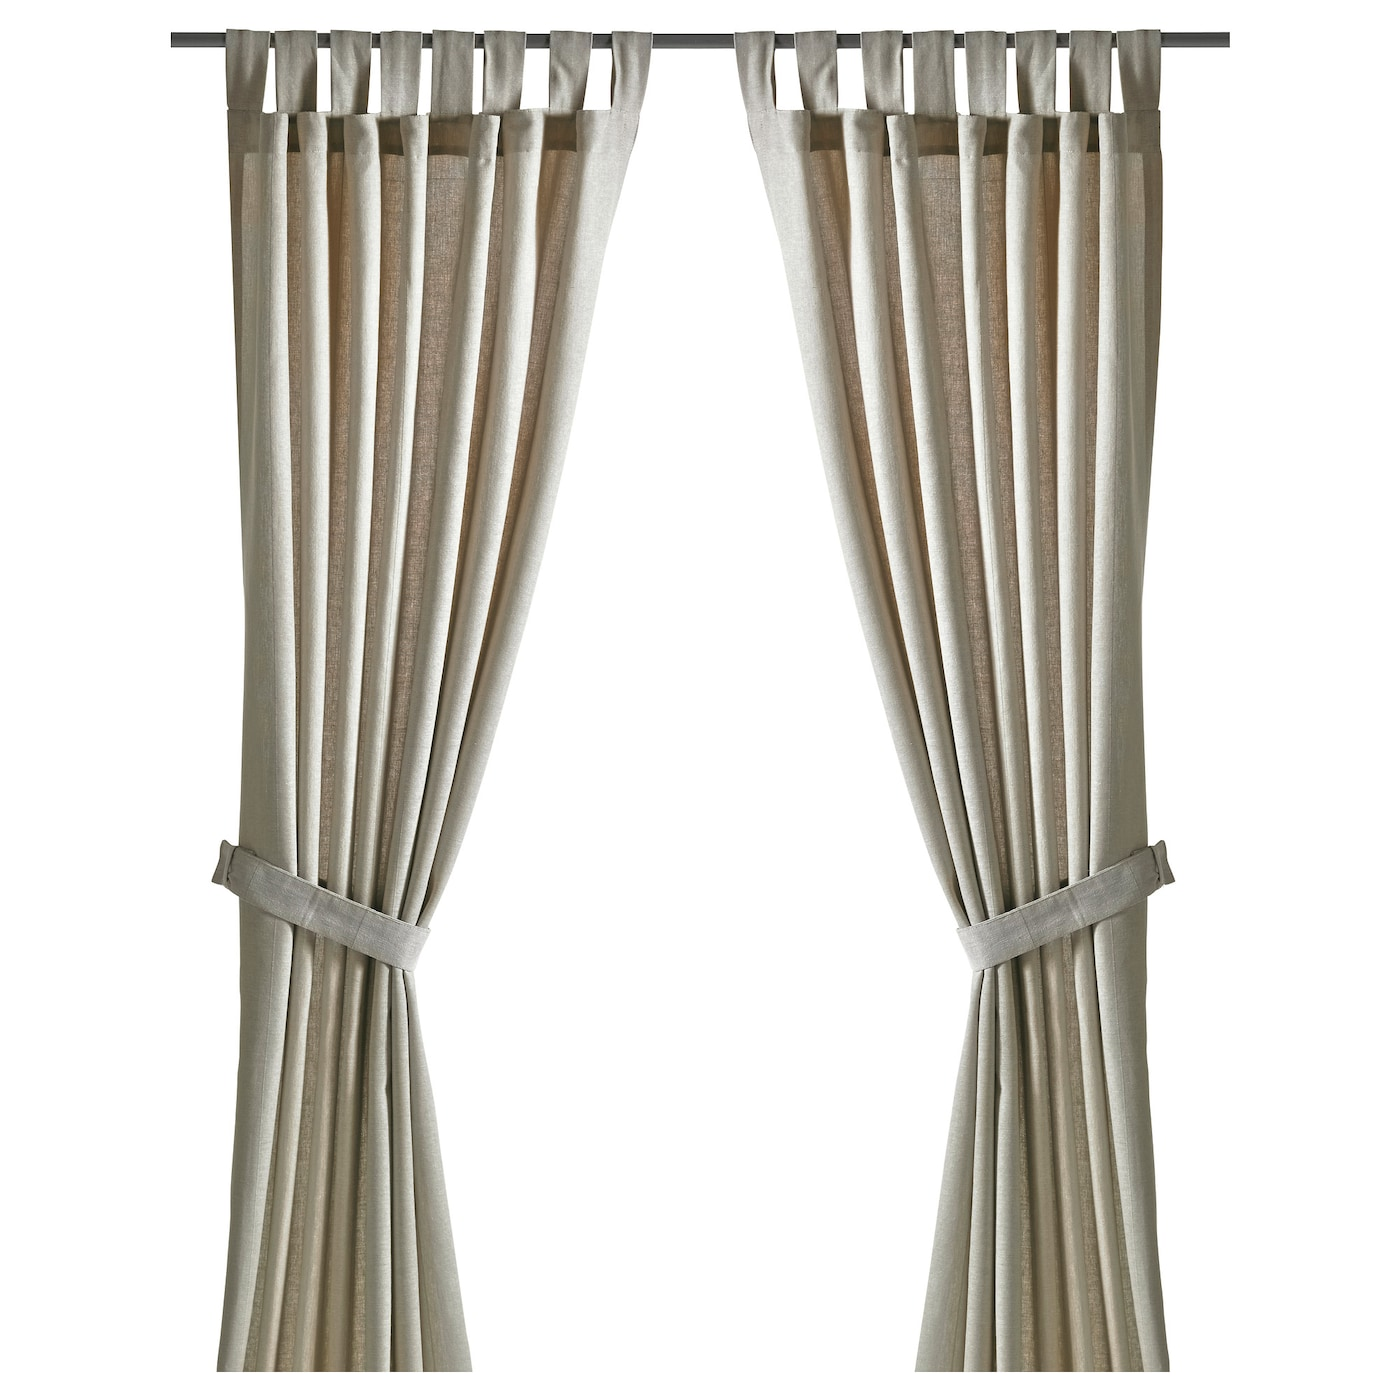 Drape Ties: LENDA Curtains With Tie-backs, 1 Pair Light Beige 140 X